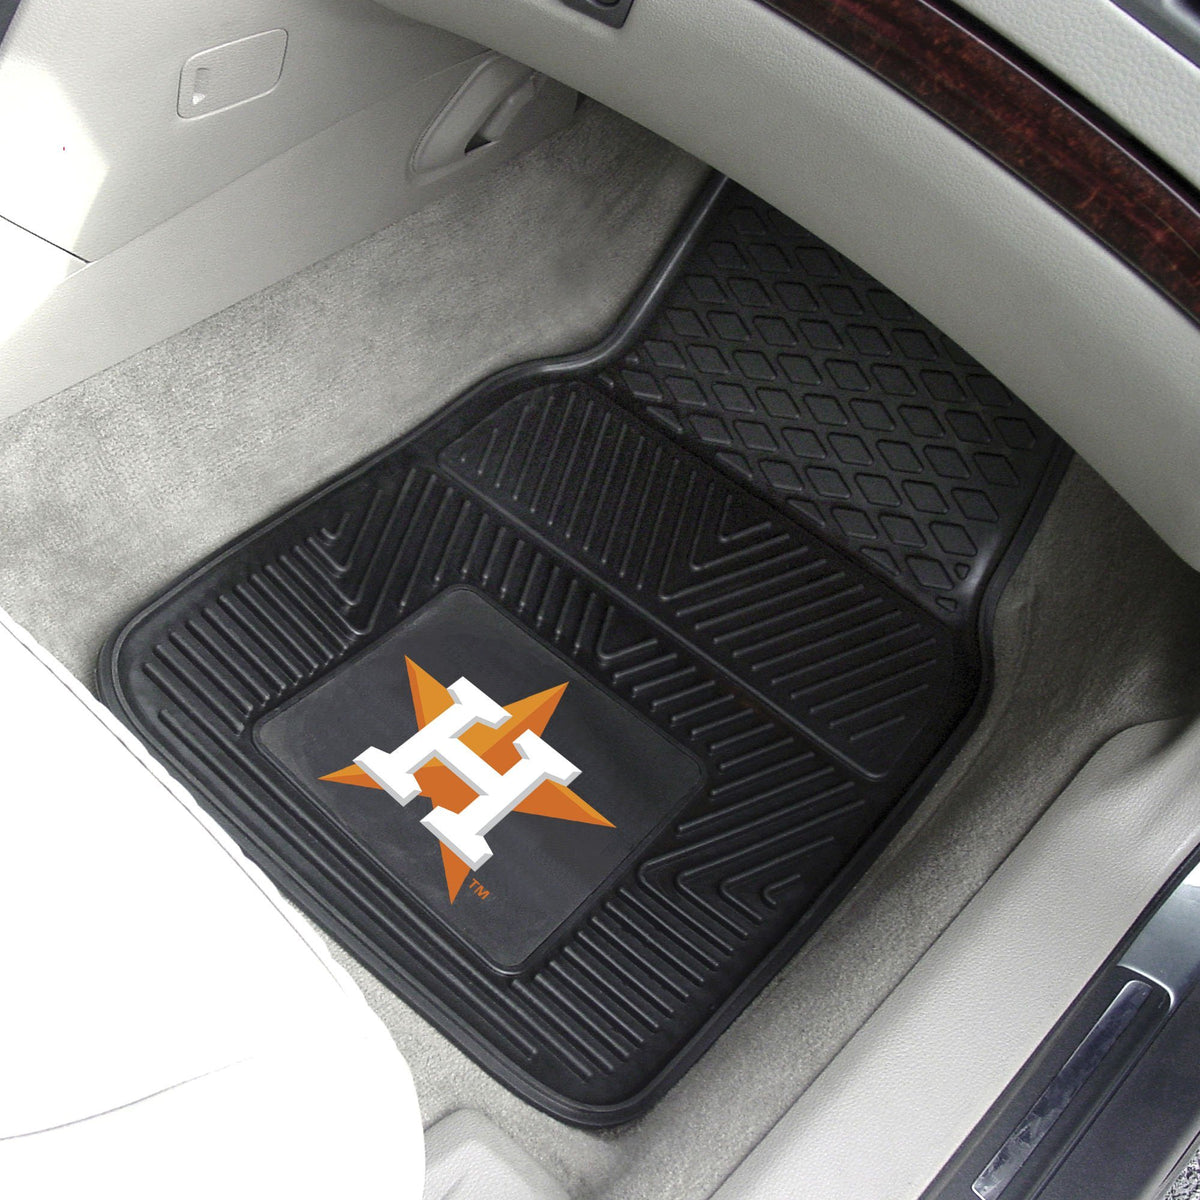 MLB - Vinyl Car Mat, 2-Piece Set MLB Mats, Front Car Mats, 2-pc Vinyl Car Mat Set, MLB, Auto Fan Mats Houston Astros